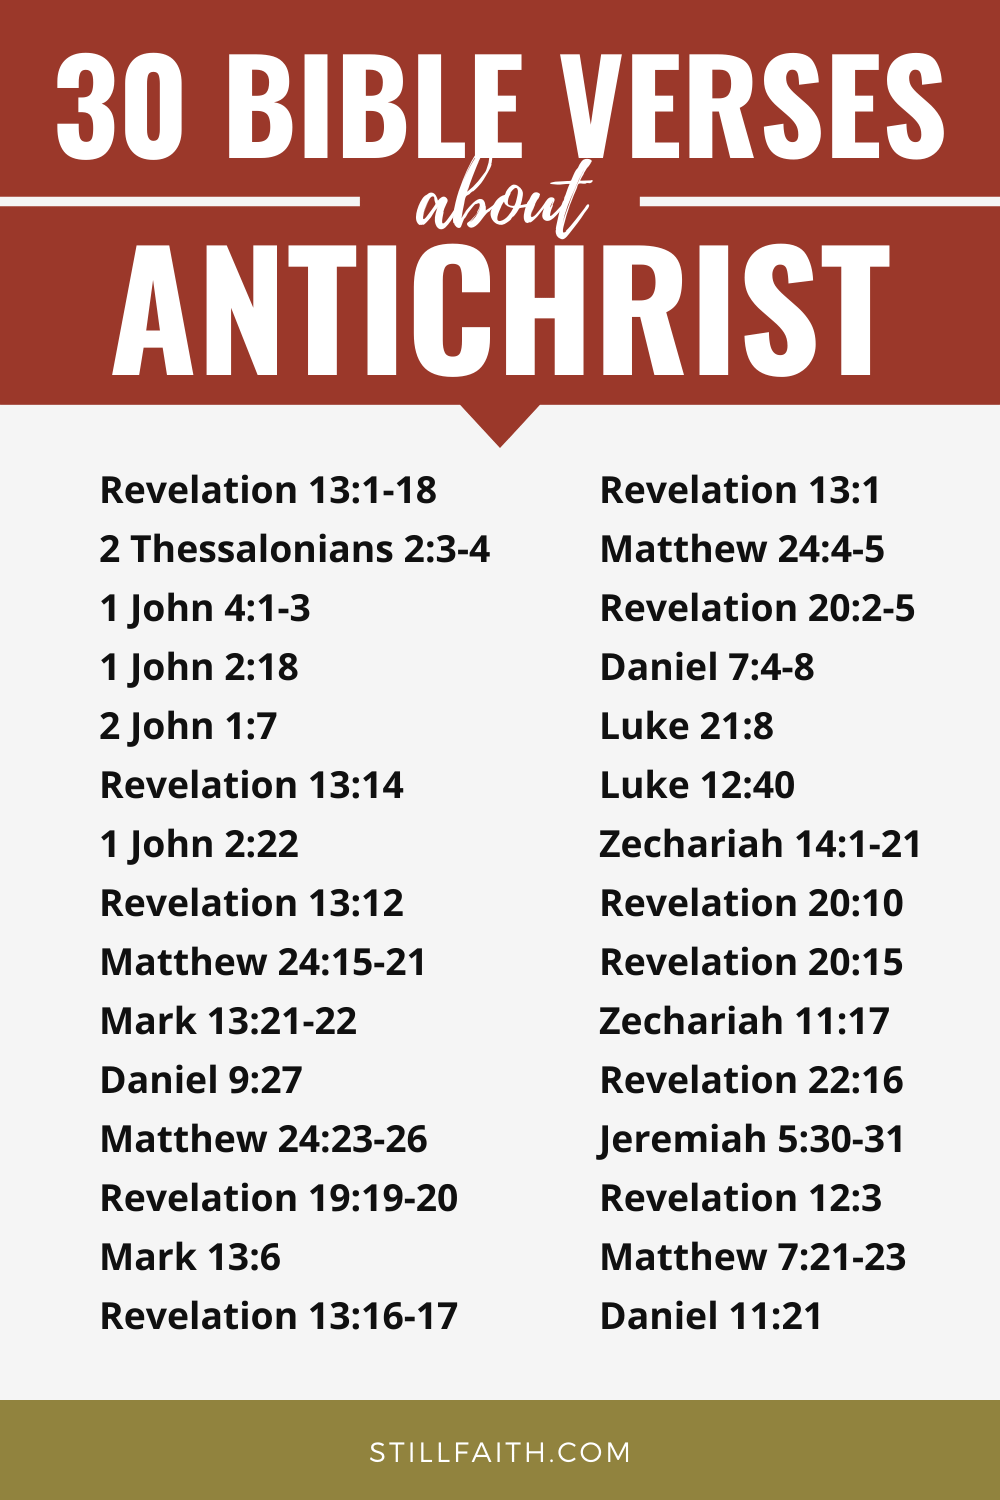 64 Bible Verses about the Antichrist